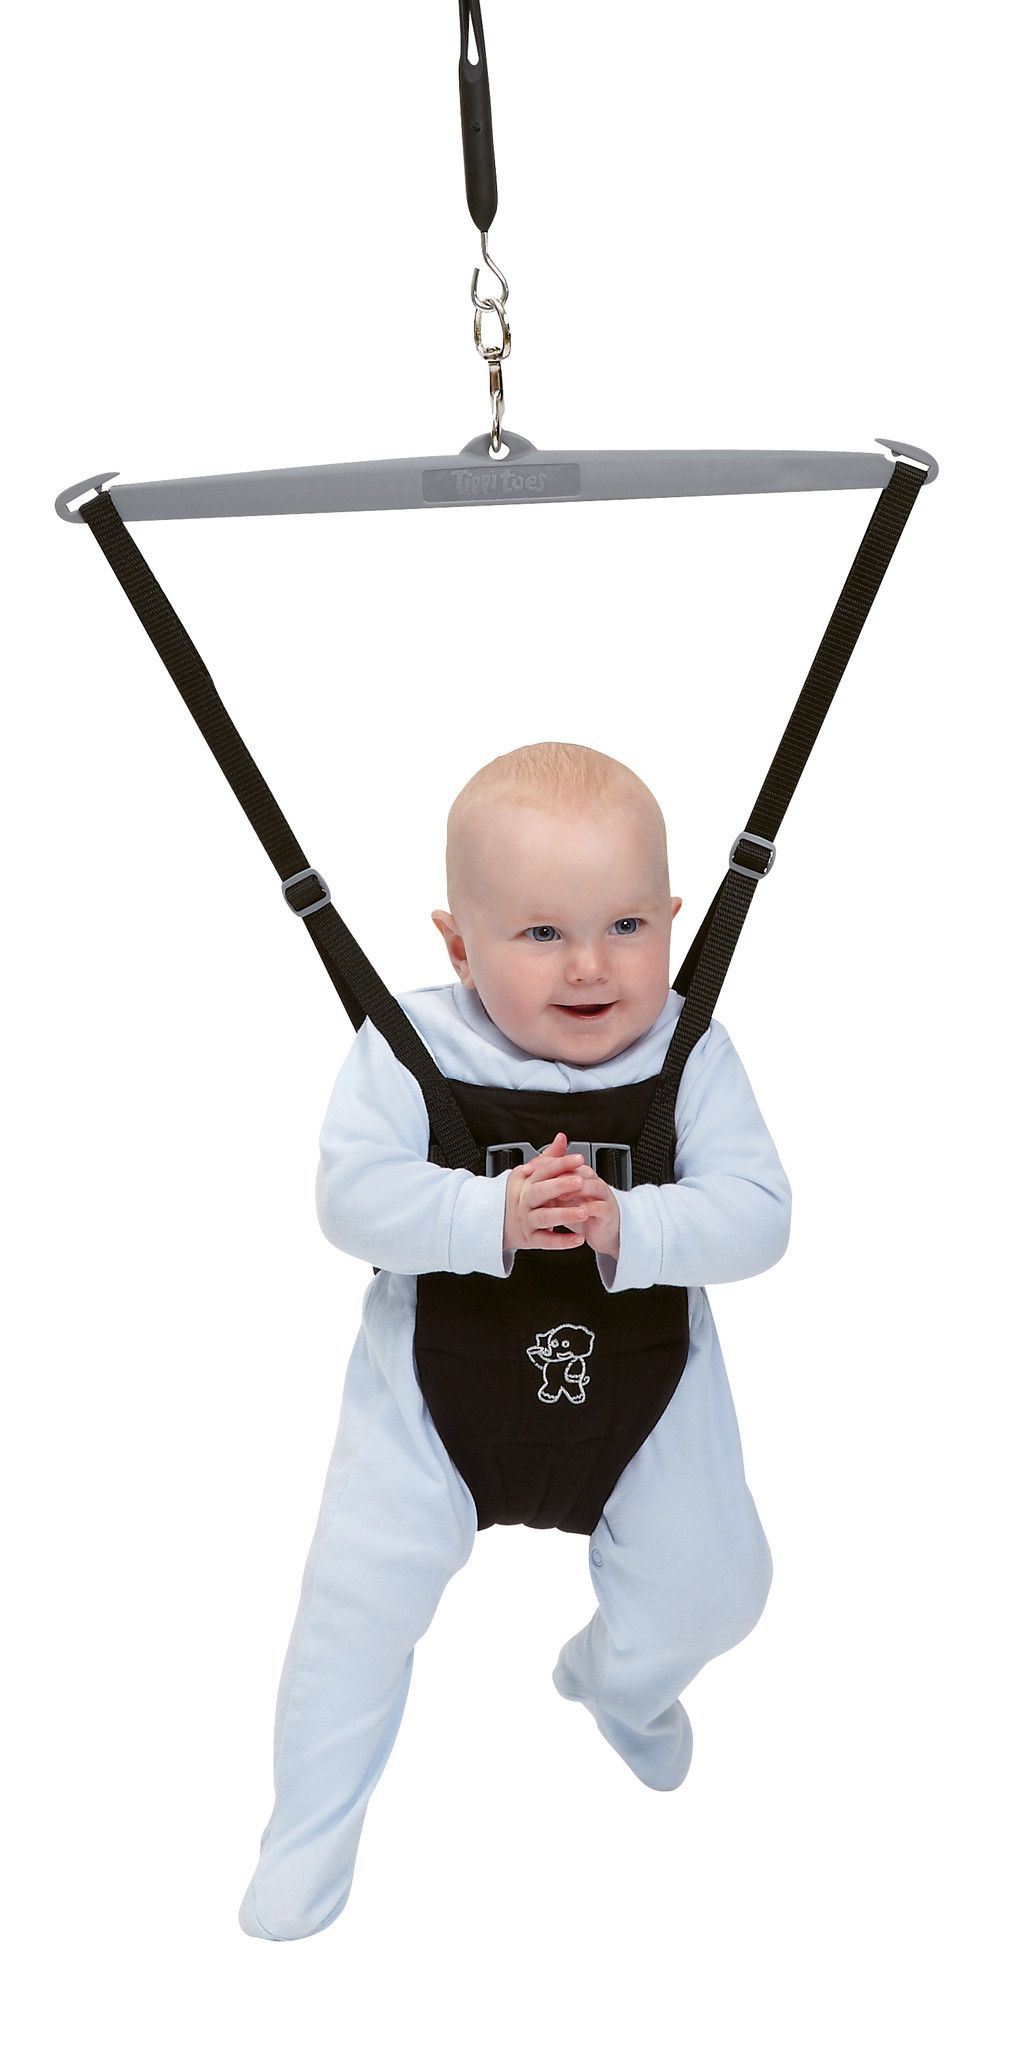 Tippitoes Baby Bouncer - Black from buybaby  sc 1 st  Pinterest & Tippitoes Baby Bouncer - Black - buybaby.co.uk - 1 | Baby Holmgreen ...